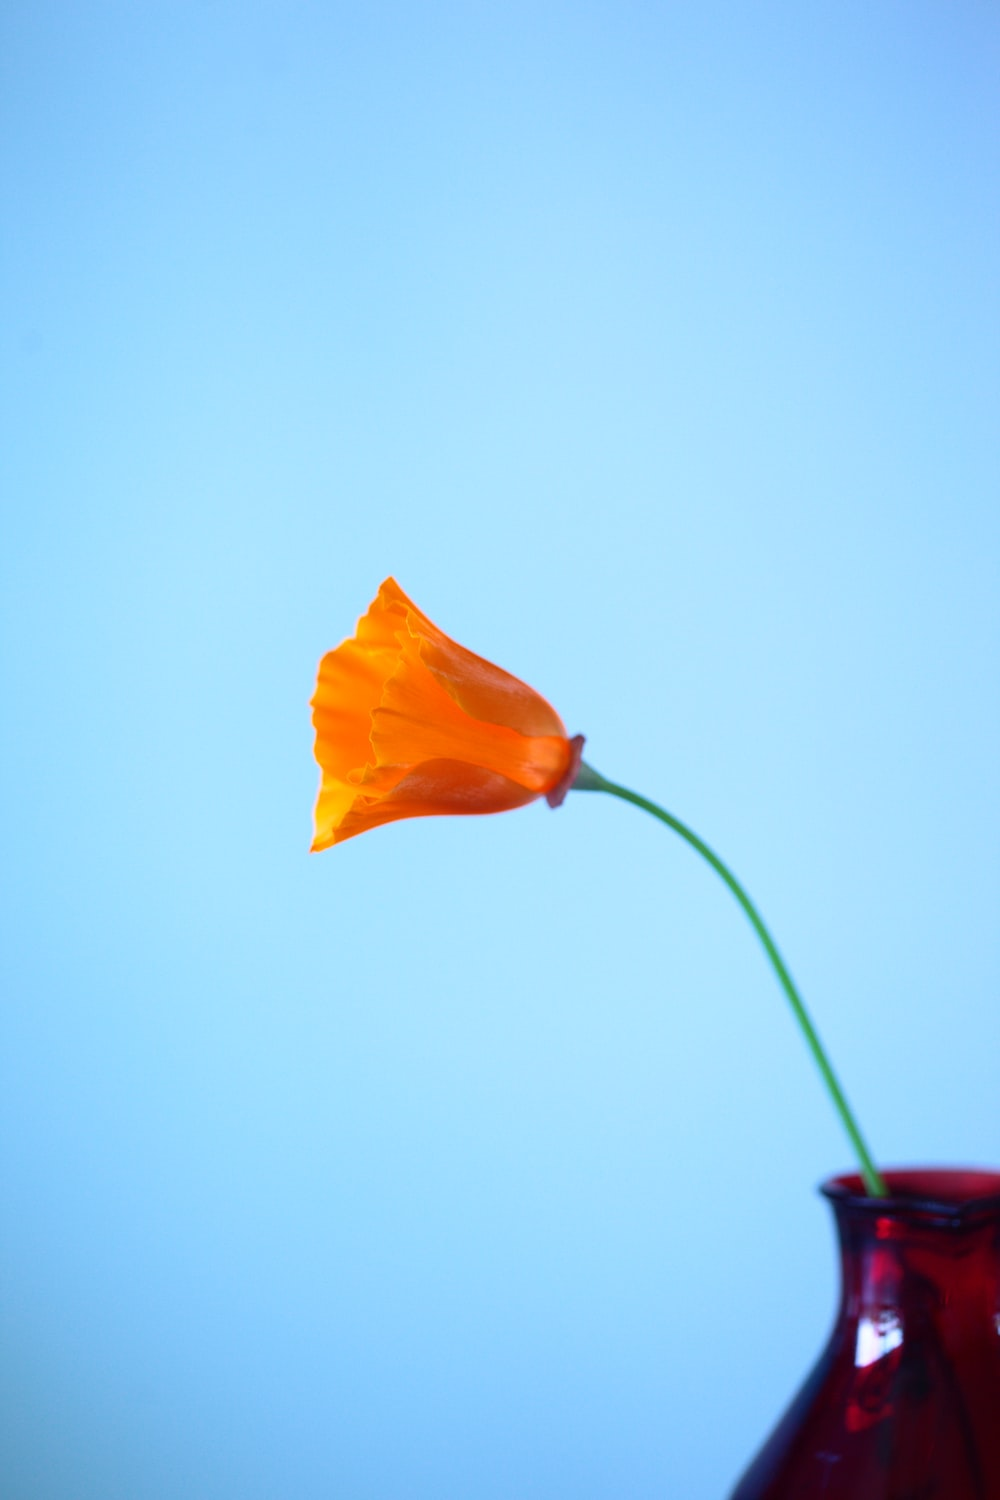 orange flower on red vase